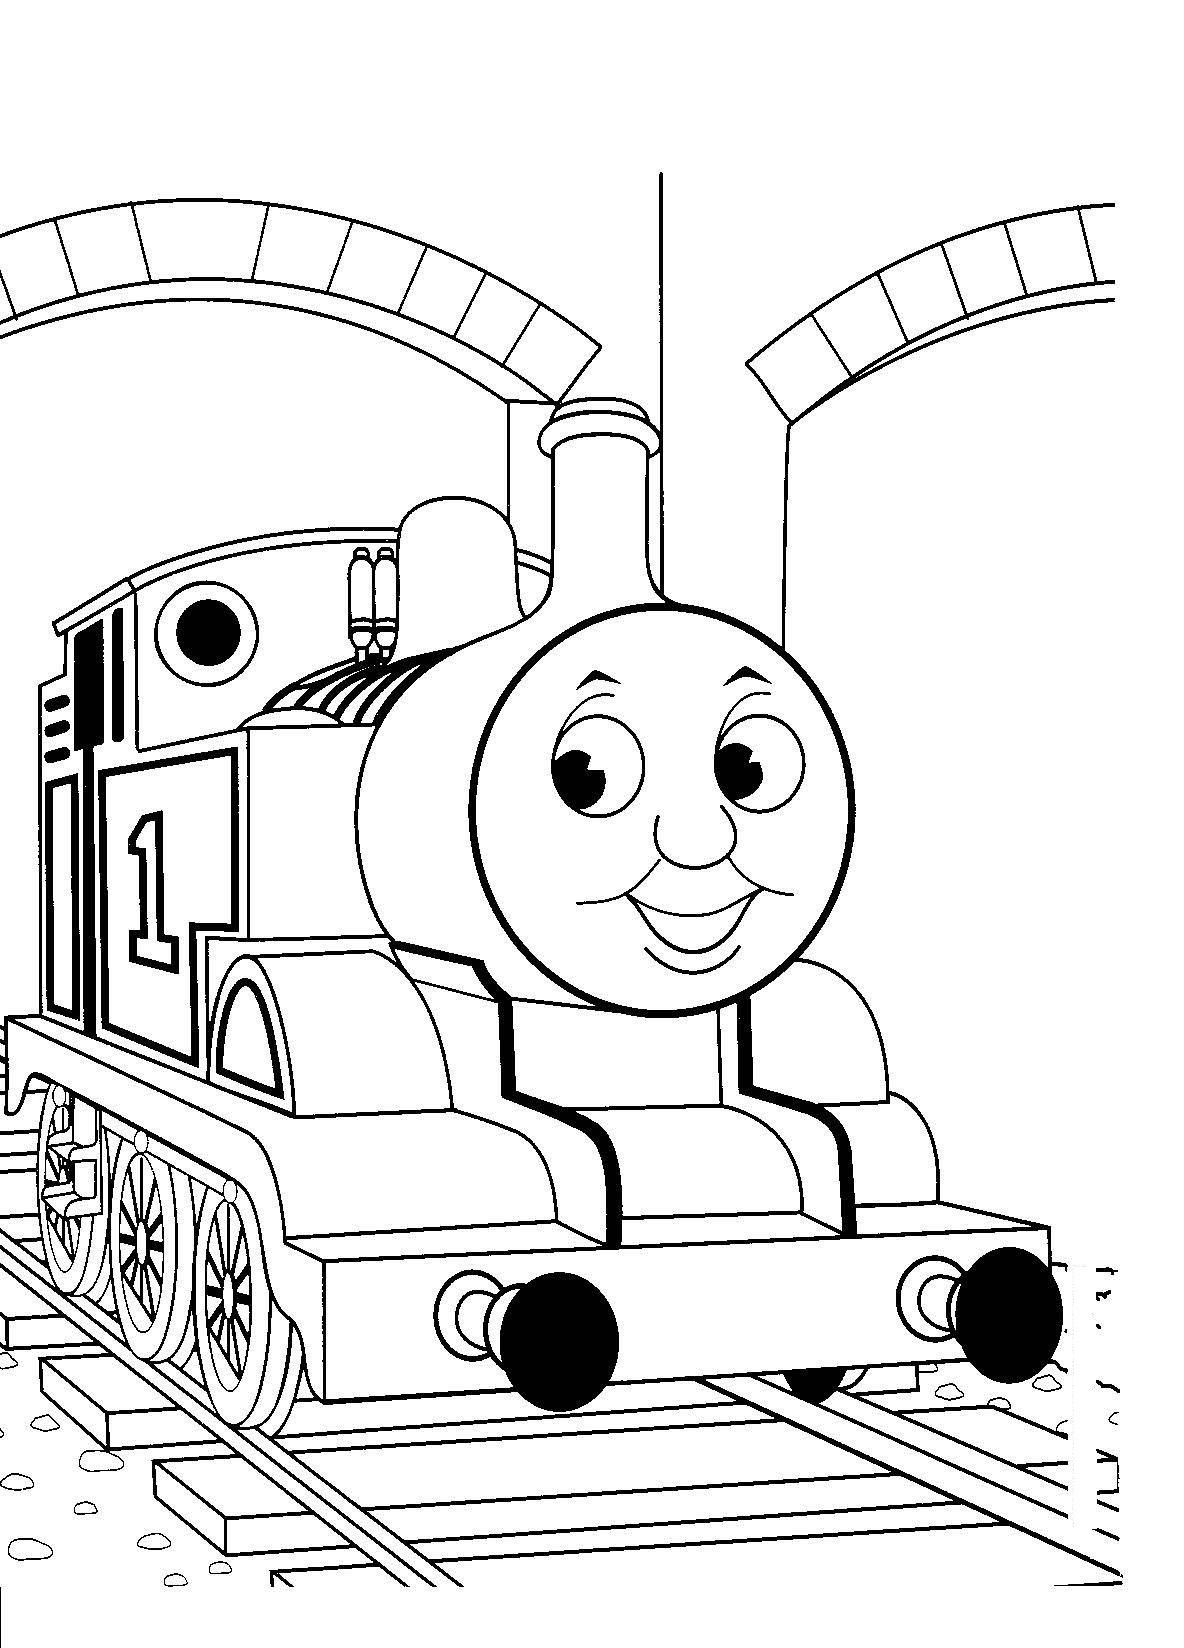 Free Printable Train Coloring Pages For Kids   Logan's 2!   Train - Free Printable Train Pictures